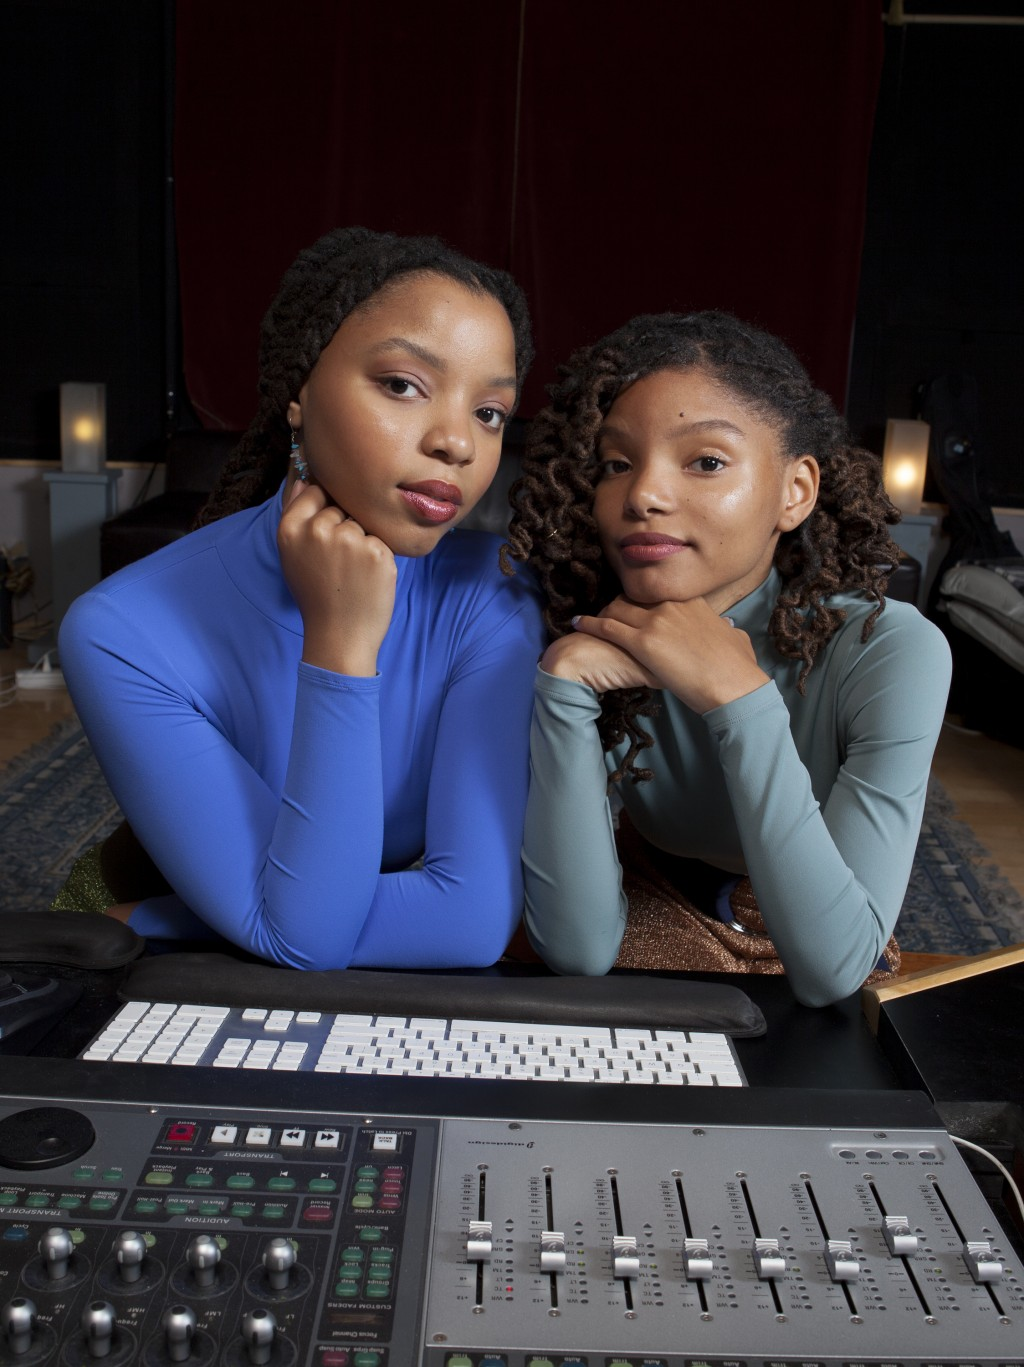 """In this Dec. 22, 2017 photo, Halle Bailey, left, and Chloe Bailey of """"Chloe x Halle"""" pose for a portrait at RMC Studio in Los Angeles. (Photo by Rebec..."""